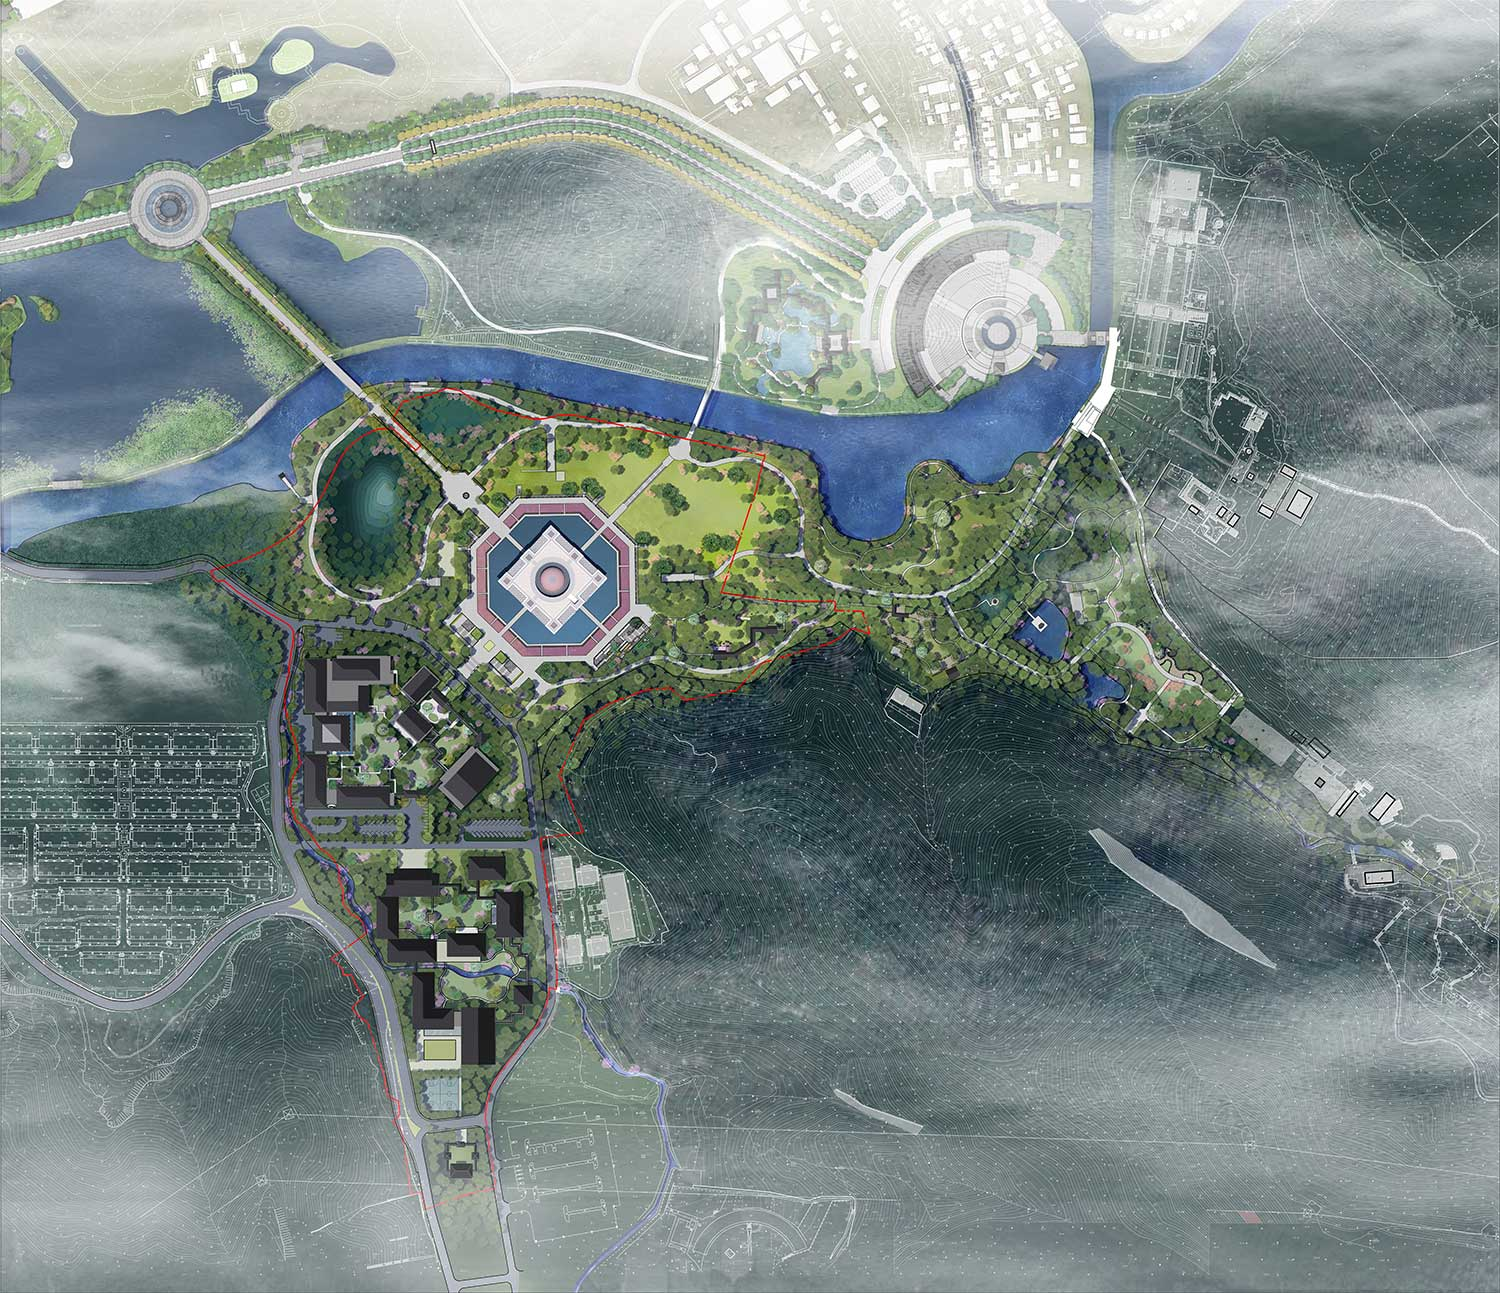 Site Plan The Architectural Design & Research Institute of Zhejiang University}